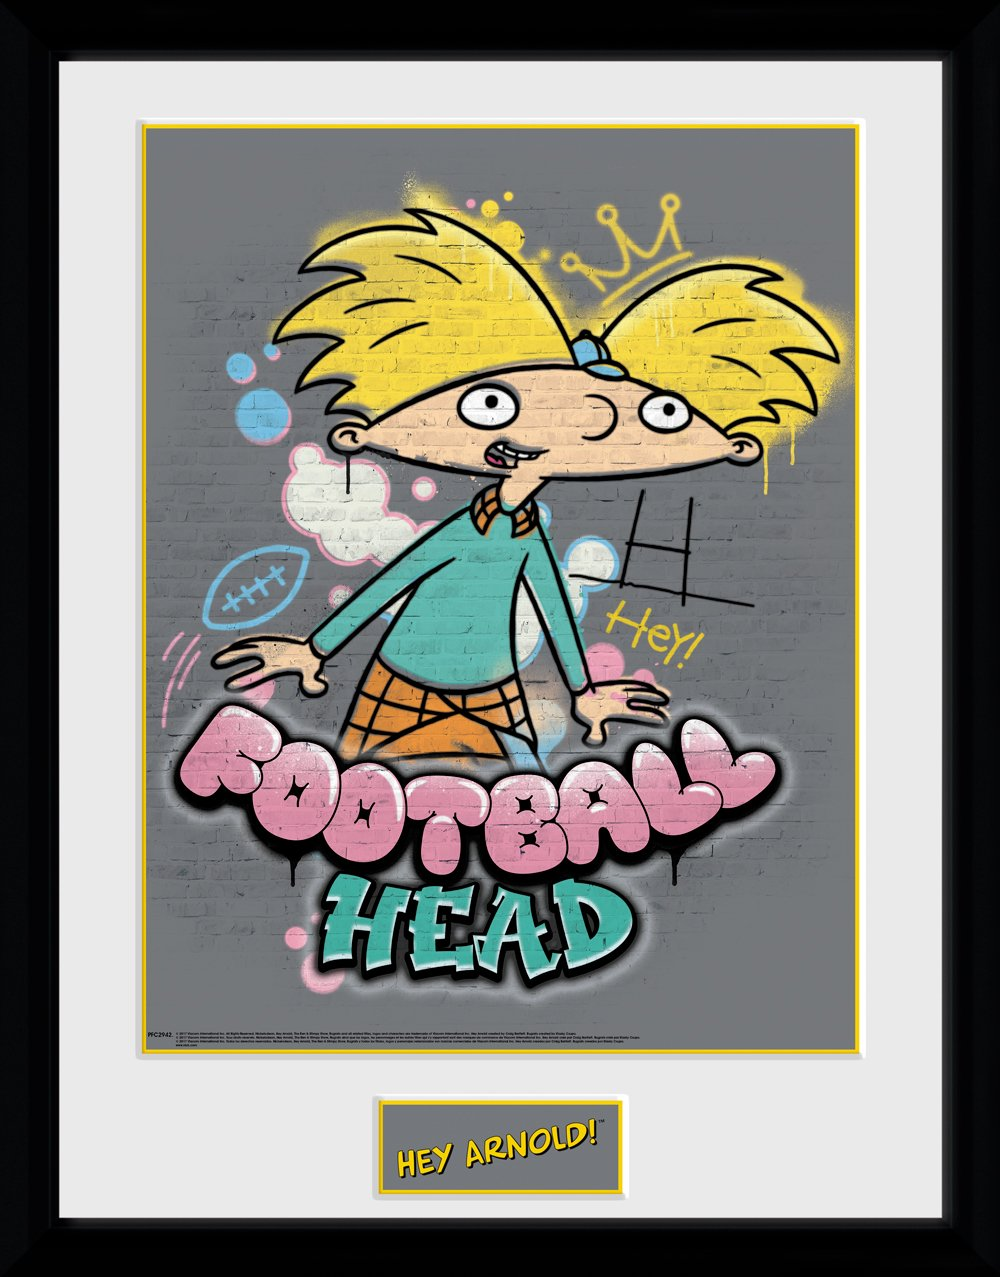 Hey Arnold image royalty free